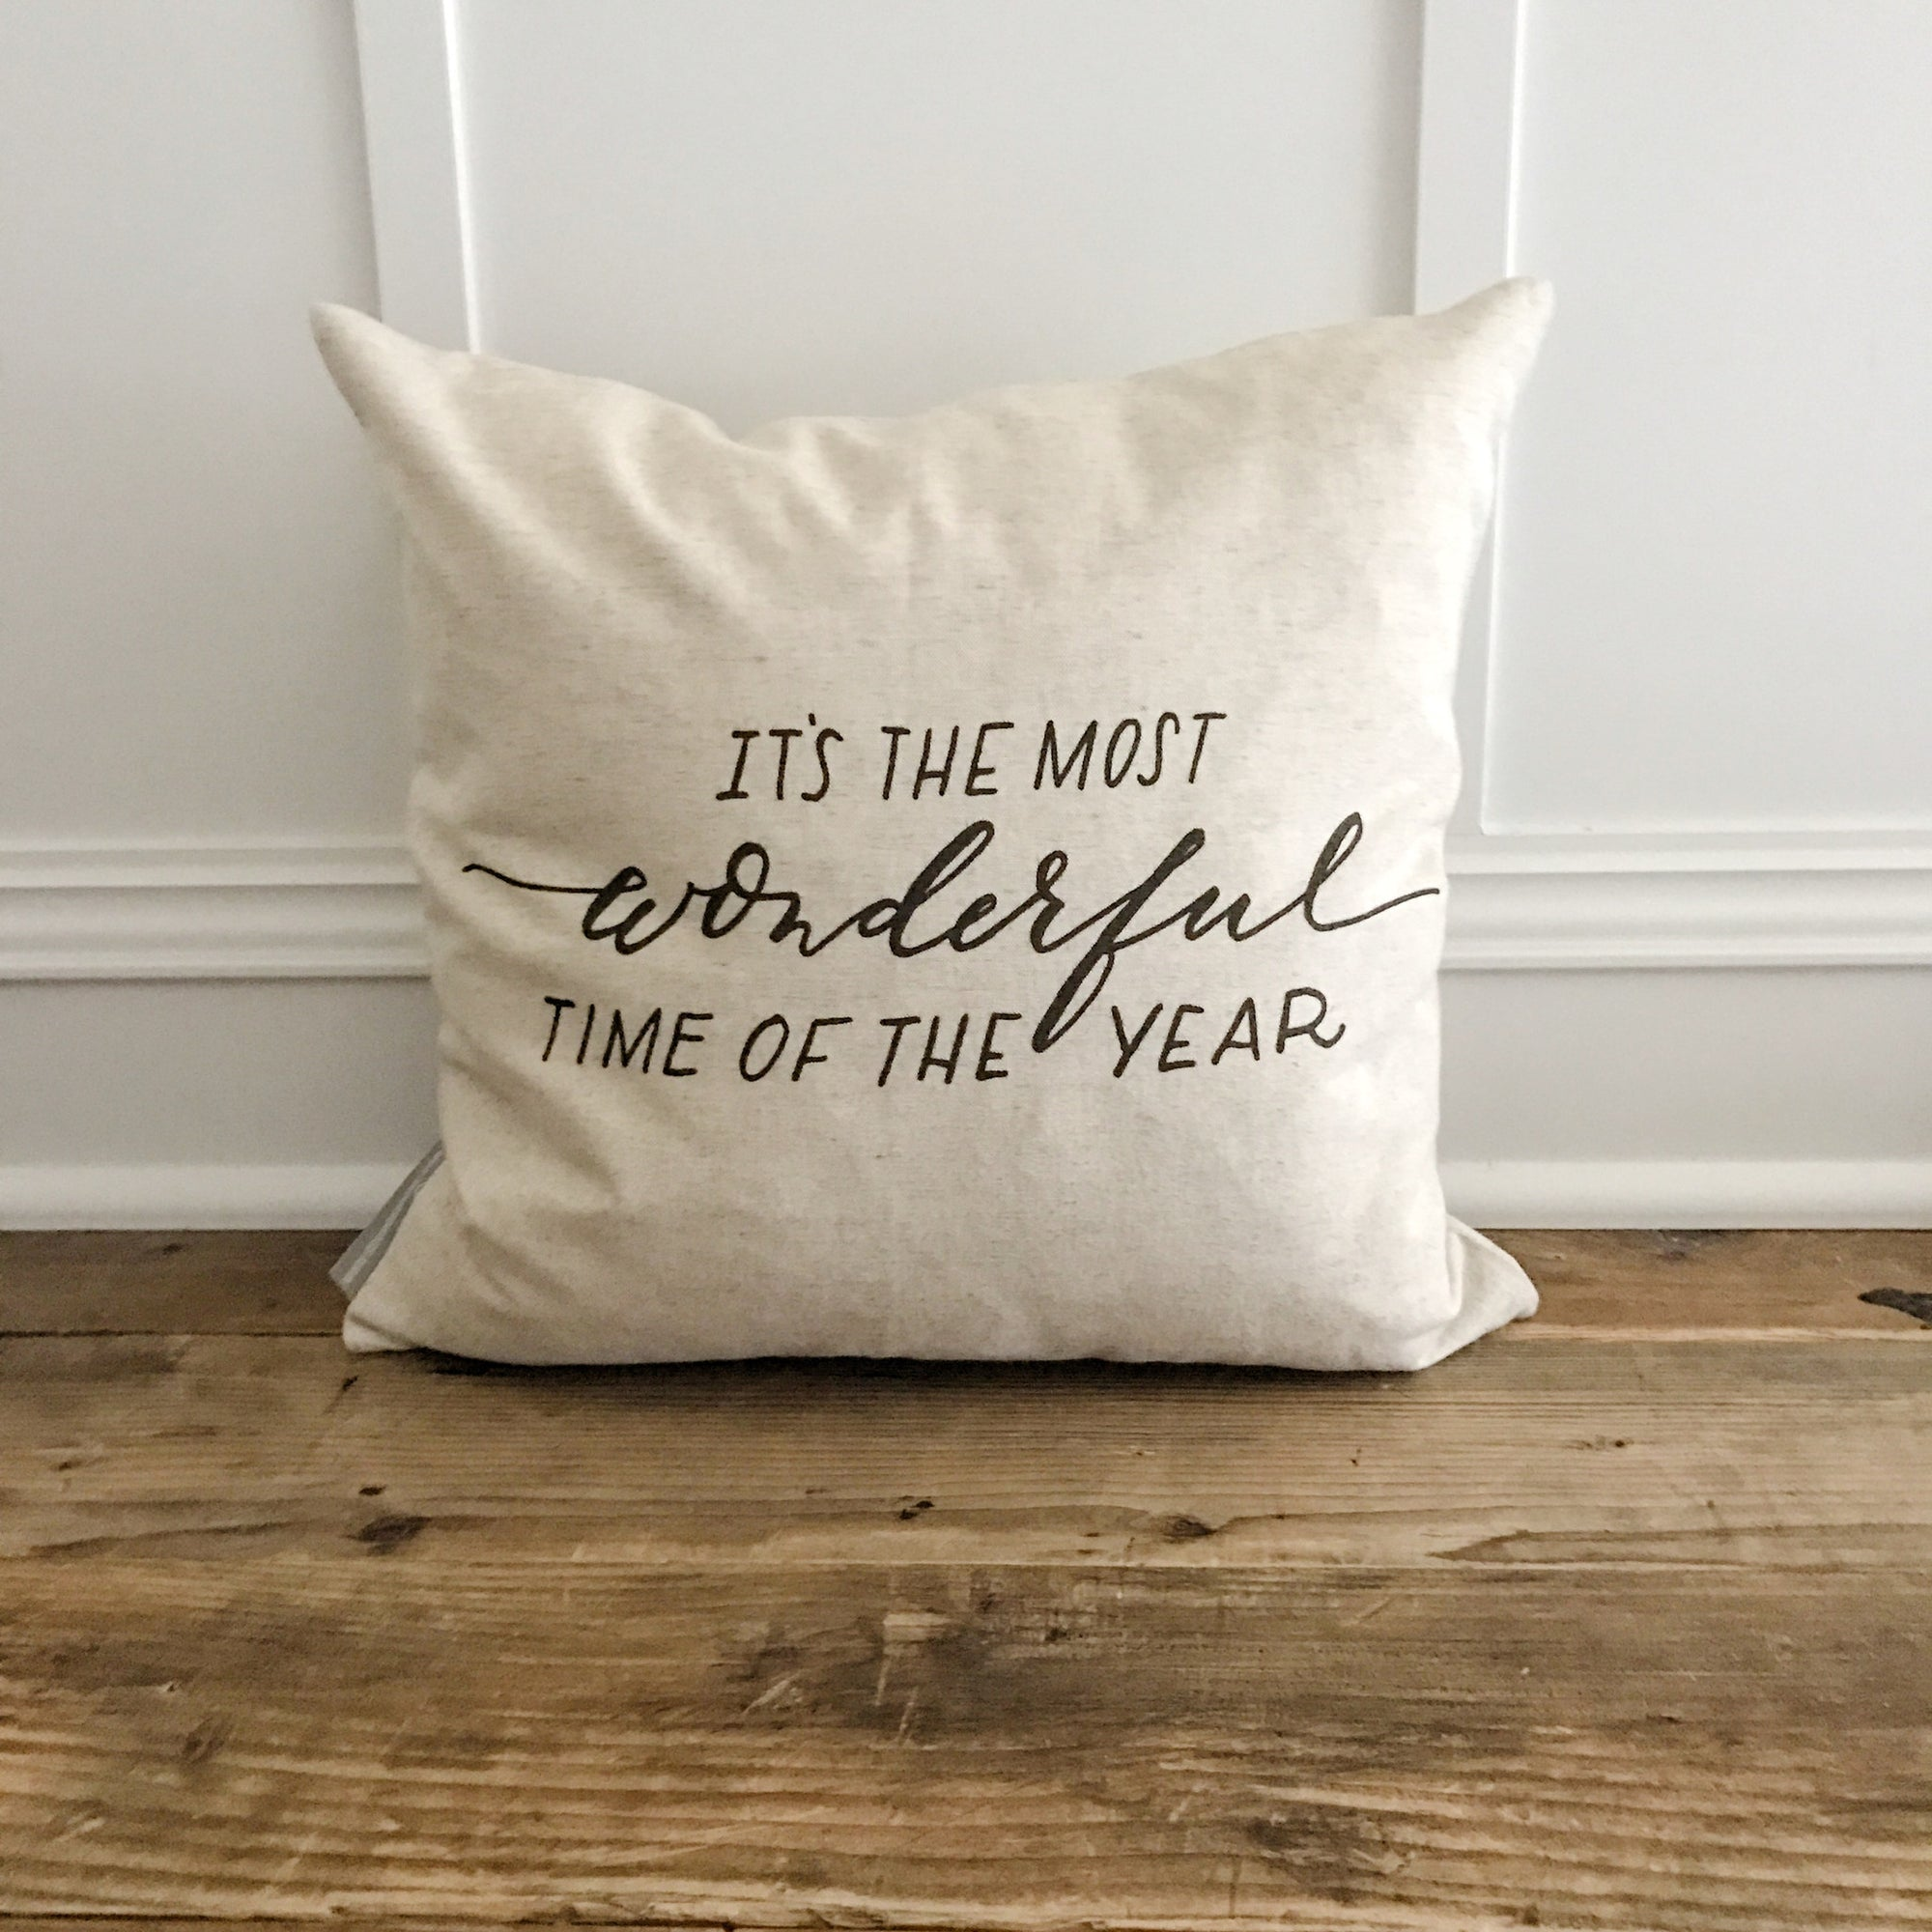 The Most Wonderful Time of the Year Pillow Cover - Linen and Ivory